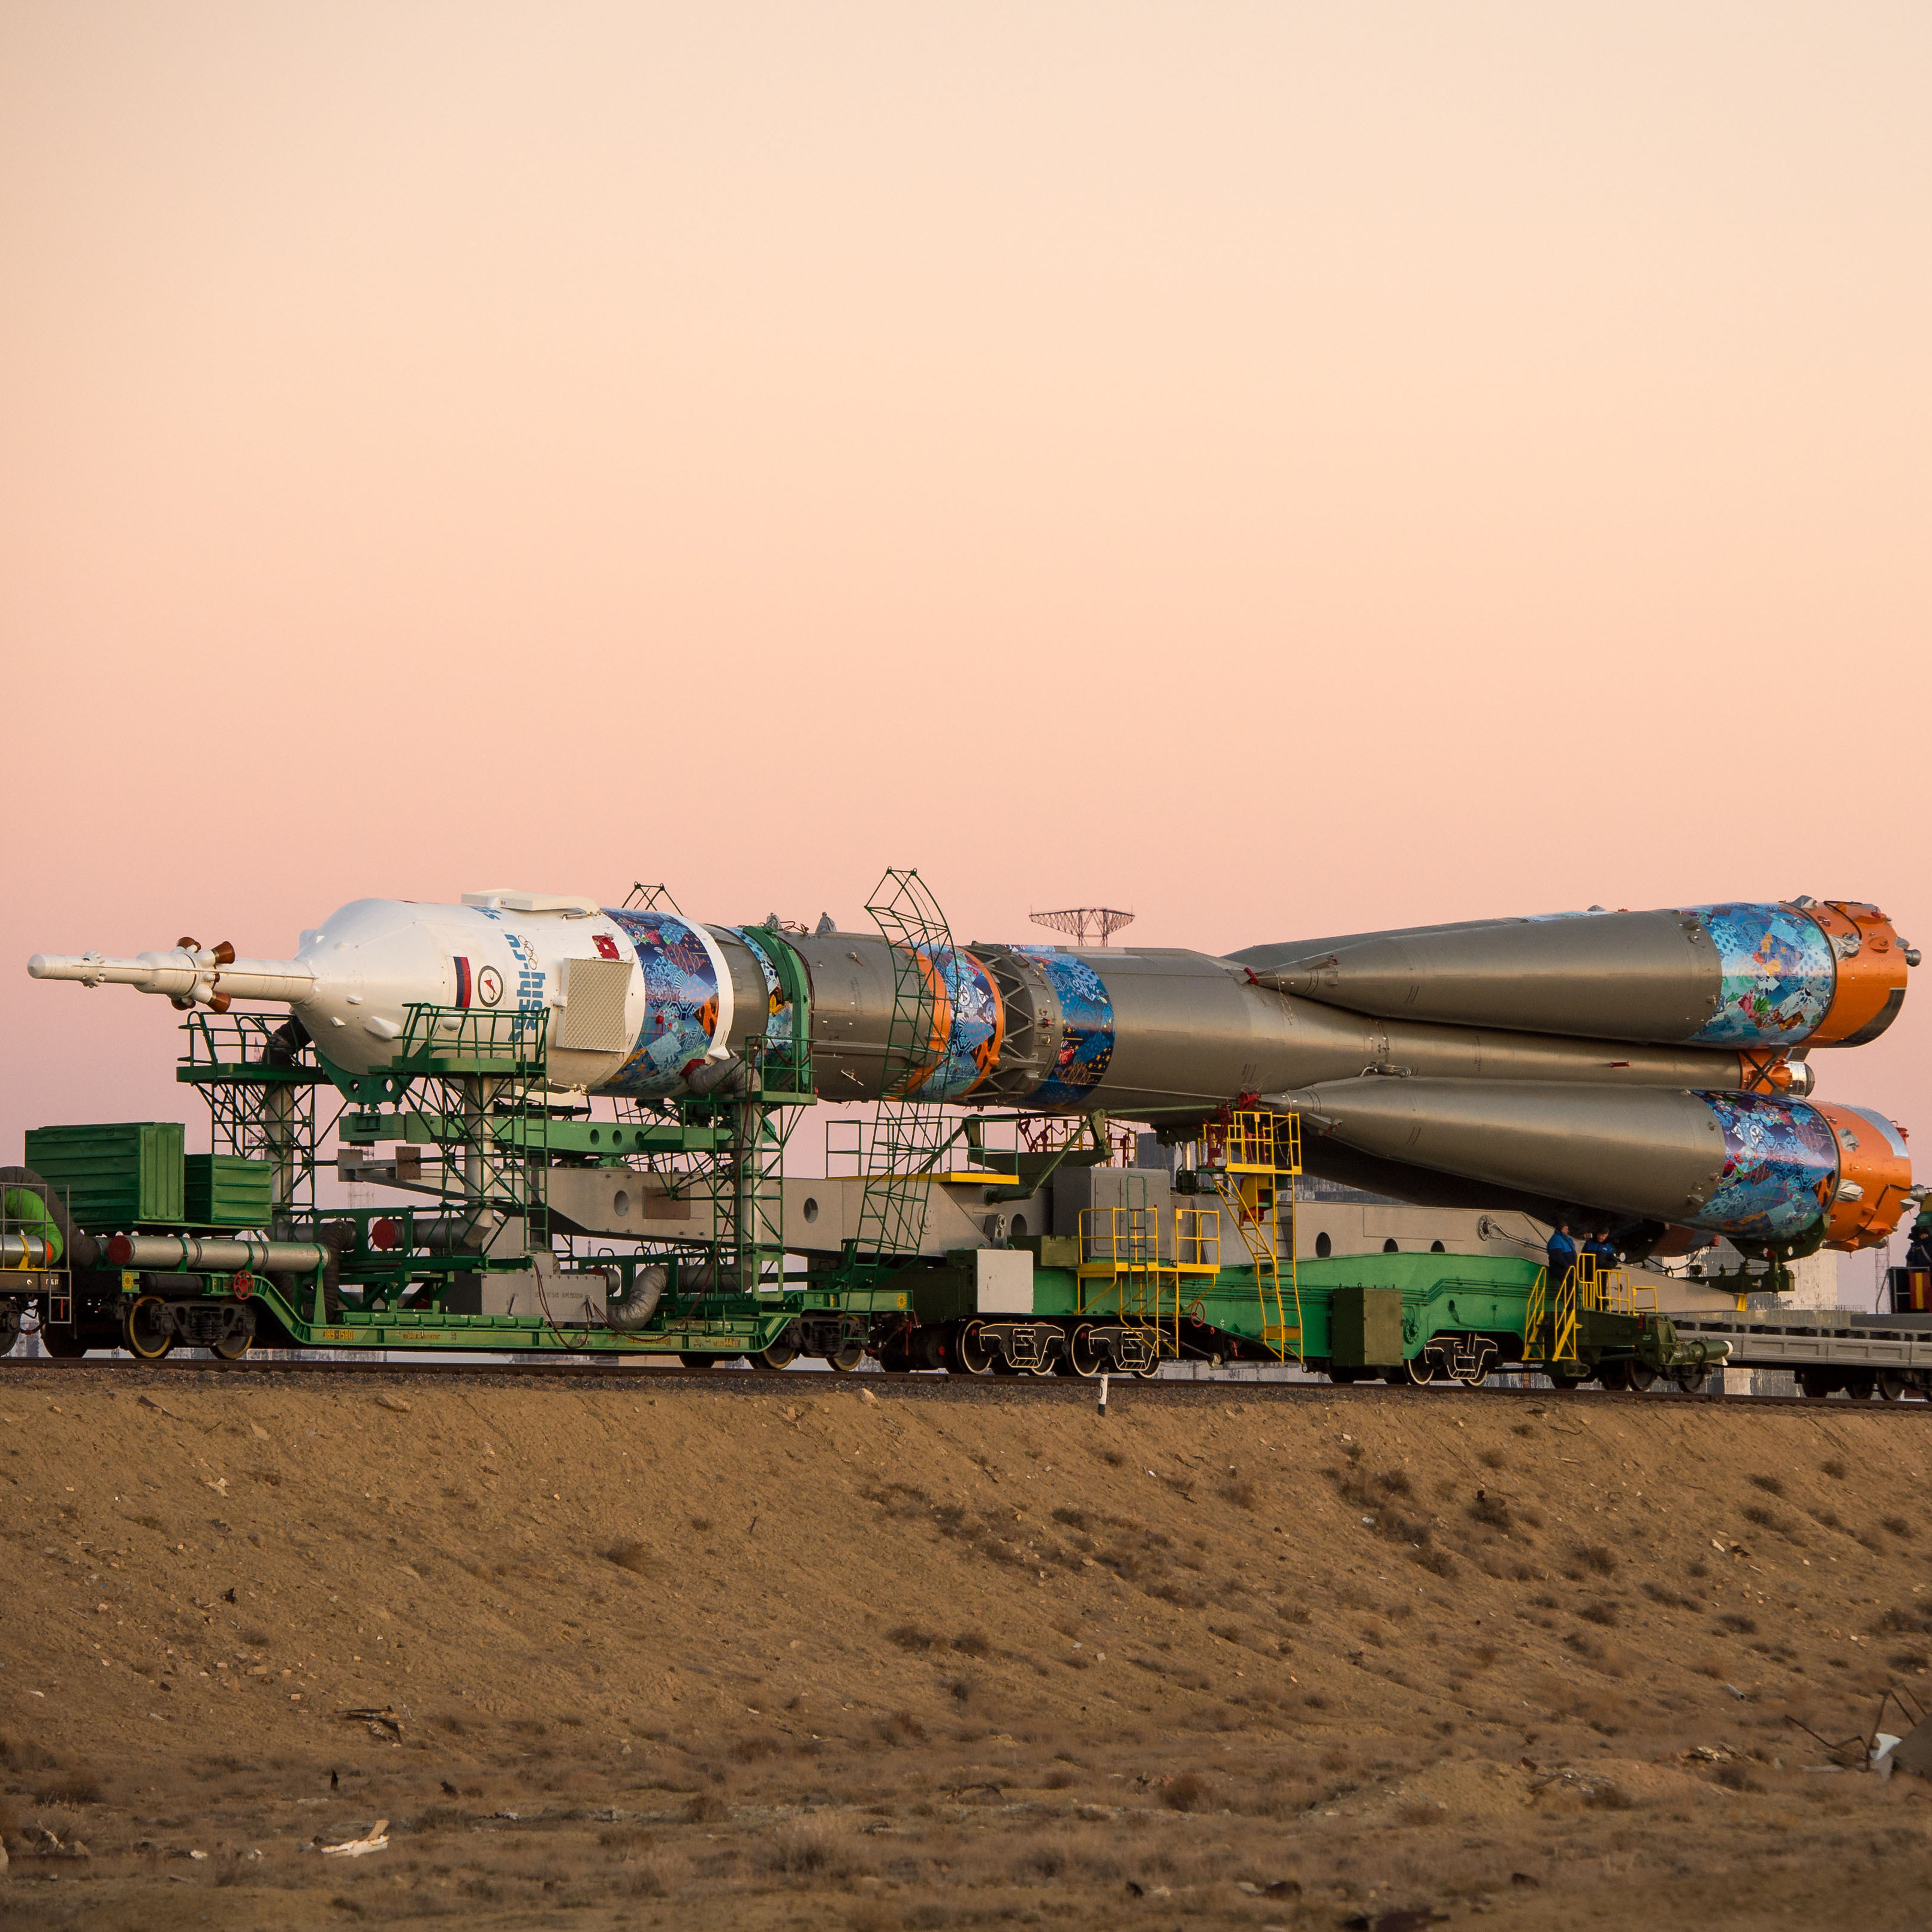 A Soyuz rocket, adorned with the logo of the Sochi Olympic Organizing Committee and other related artwork, is rolled out to the launch pad by train on Nov. 5, at the Baikonur Cosmodrome in Kazakhstan.